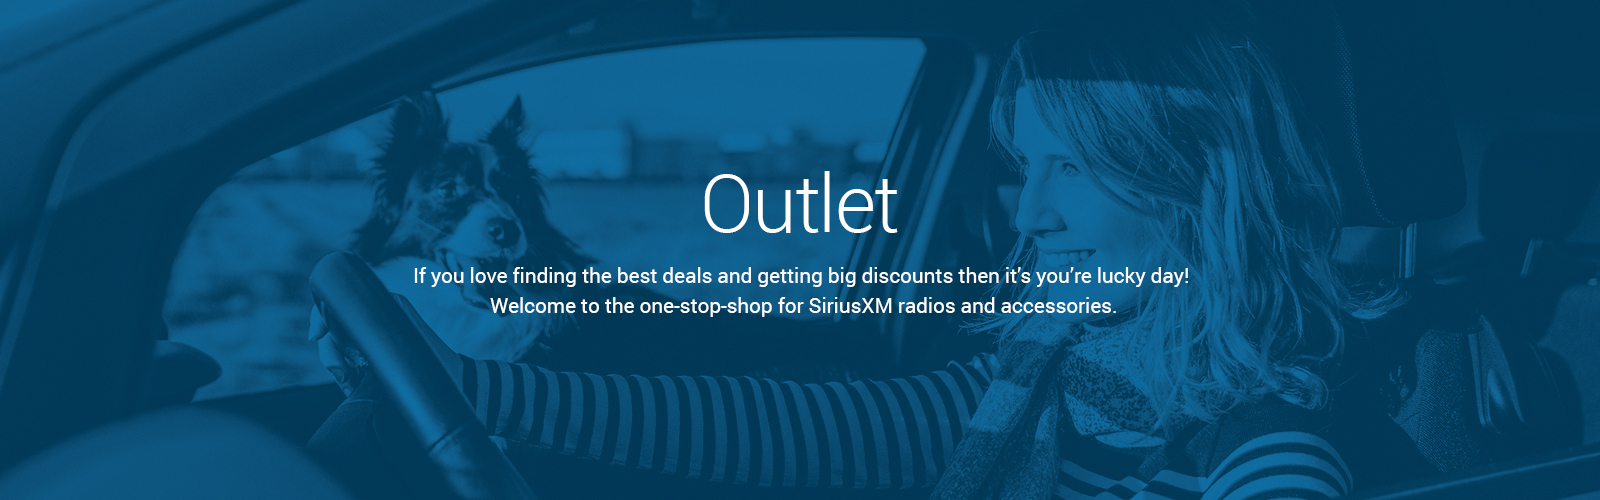 Discounted Outlet Radios